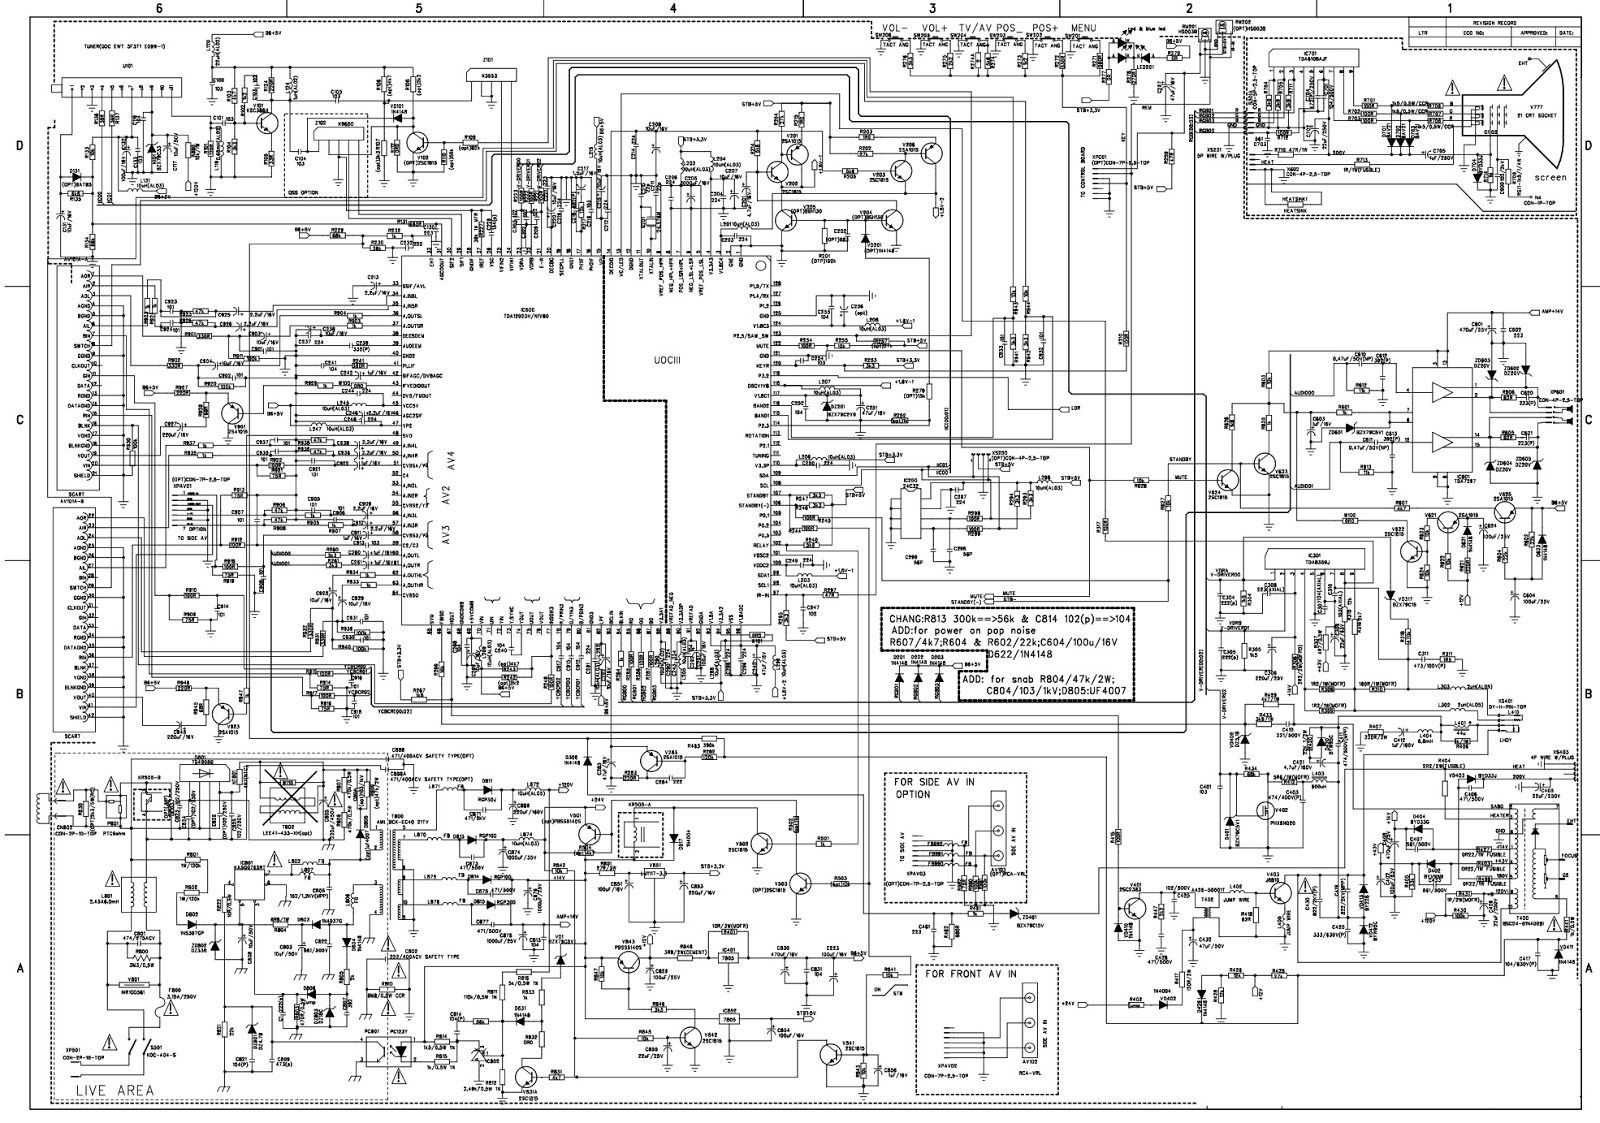 Samsung Led Tv Wiring Diagram : 29 Wiring Diagram Images